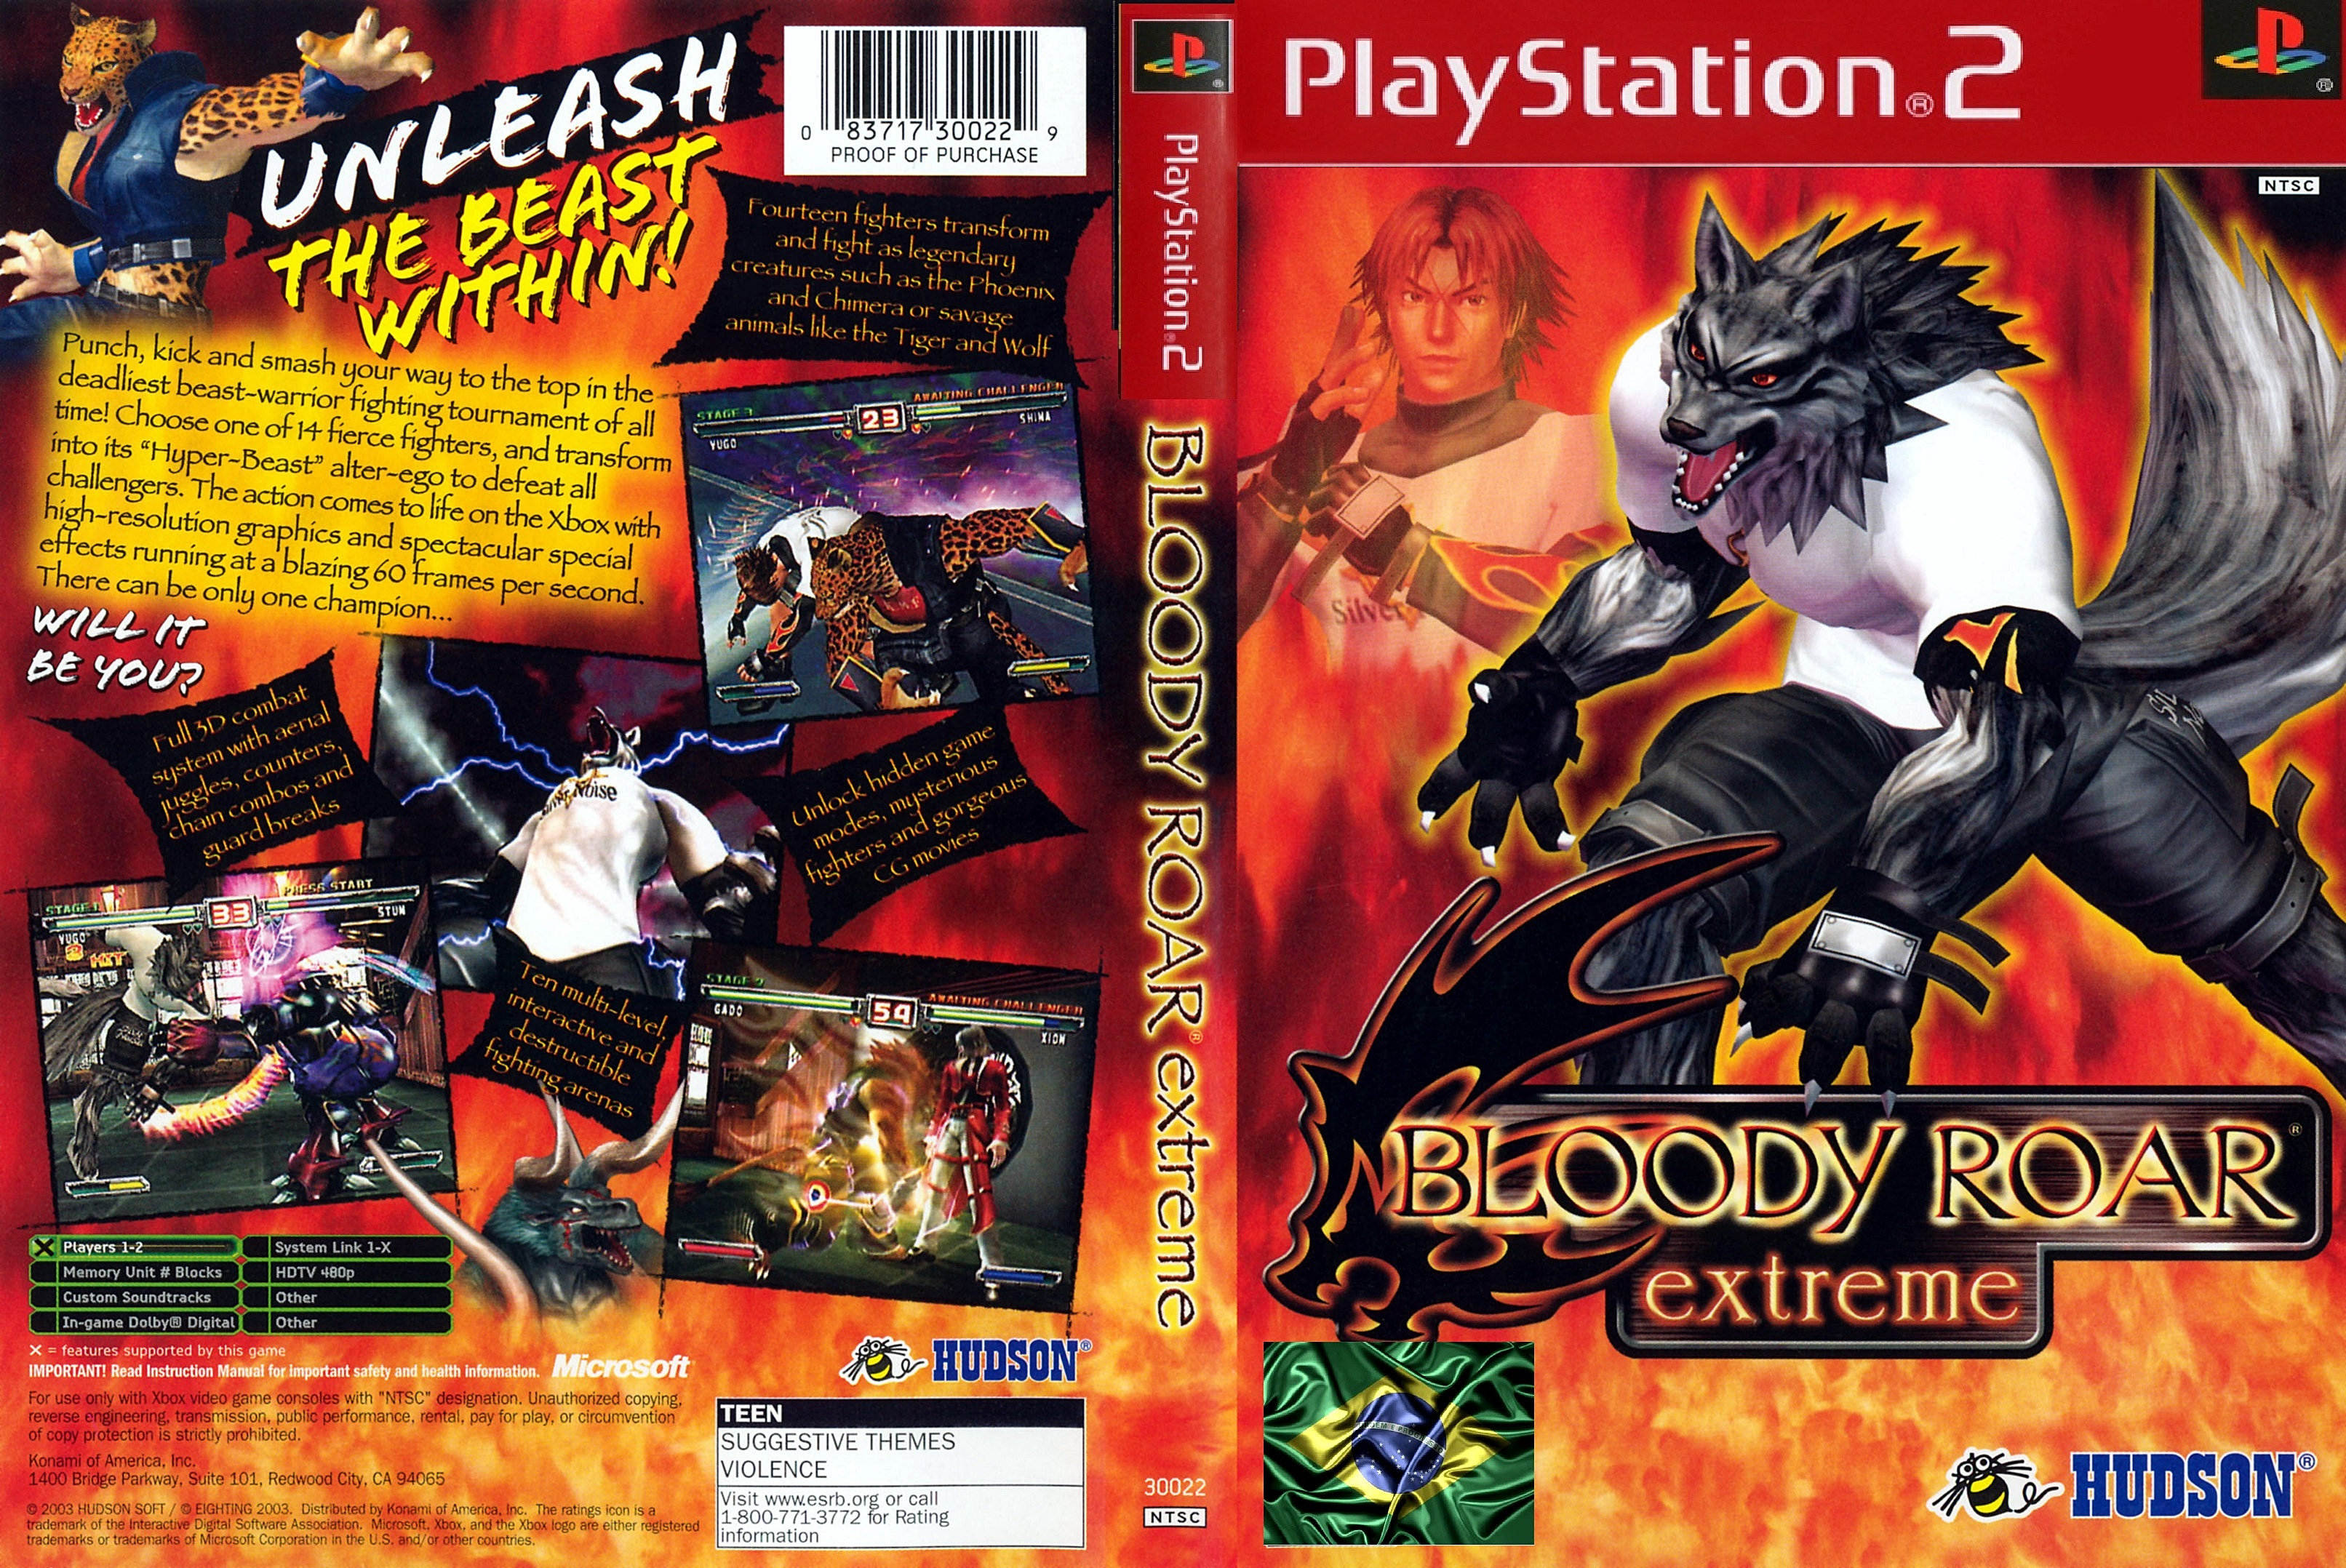 Bloody roar hentai game naked gallery